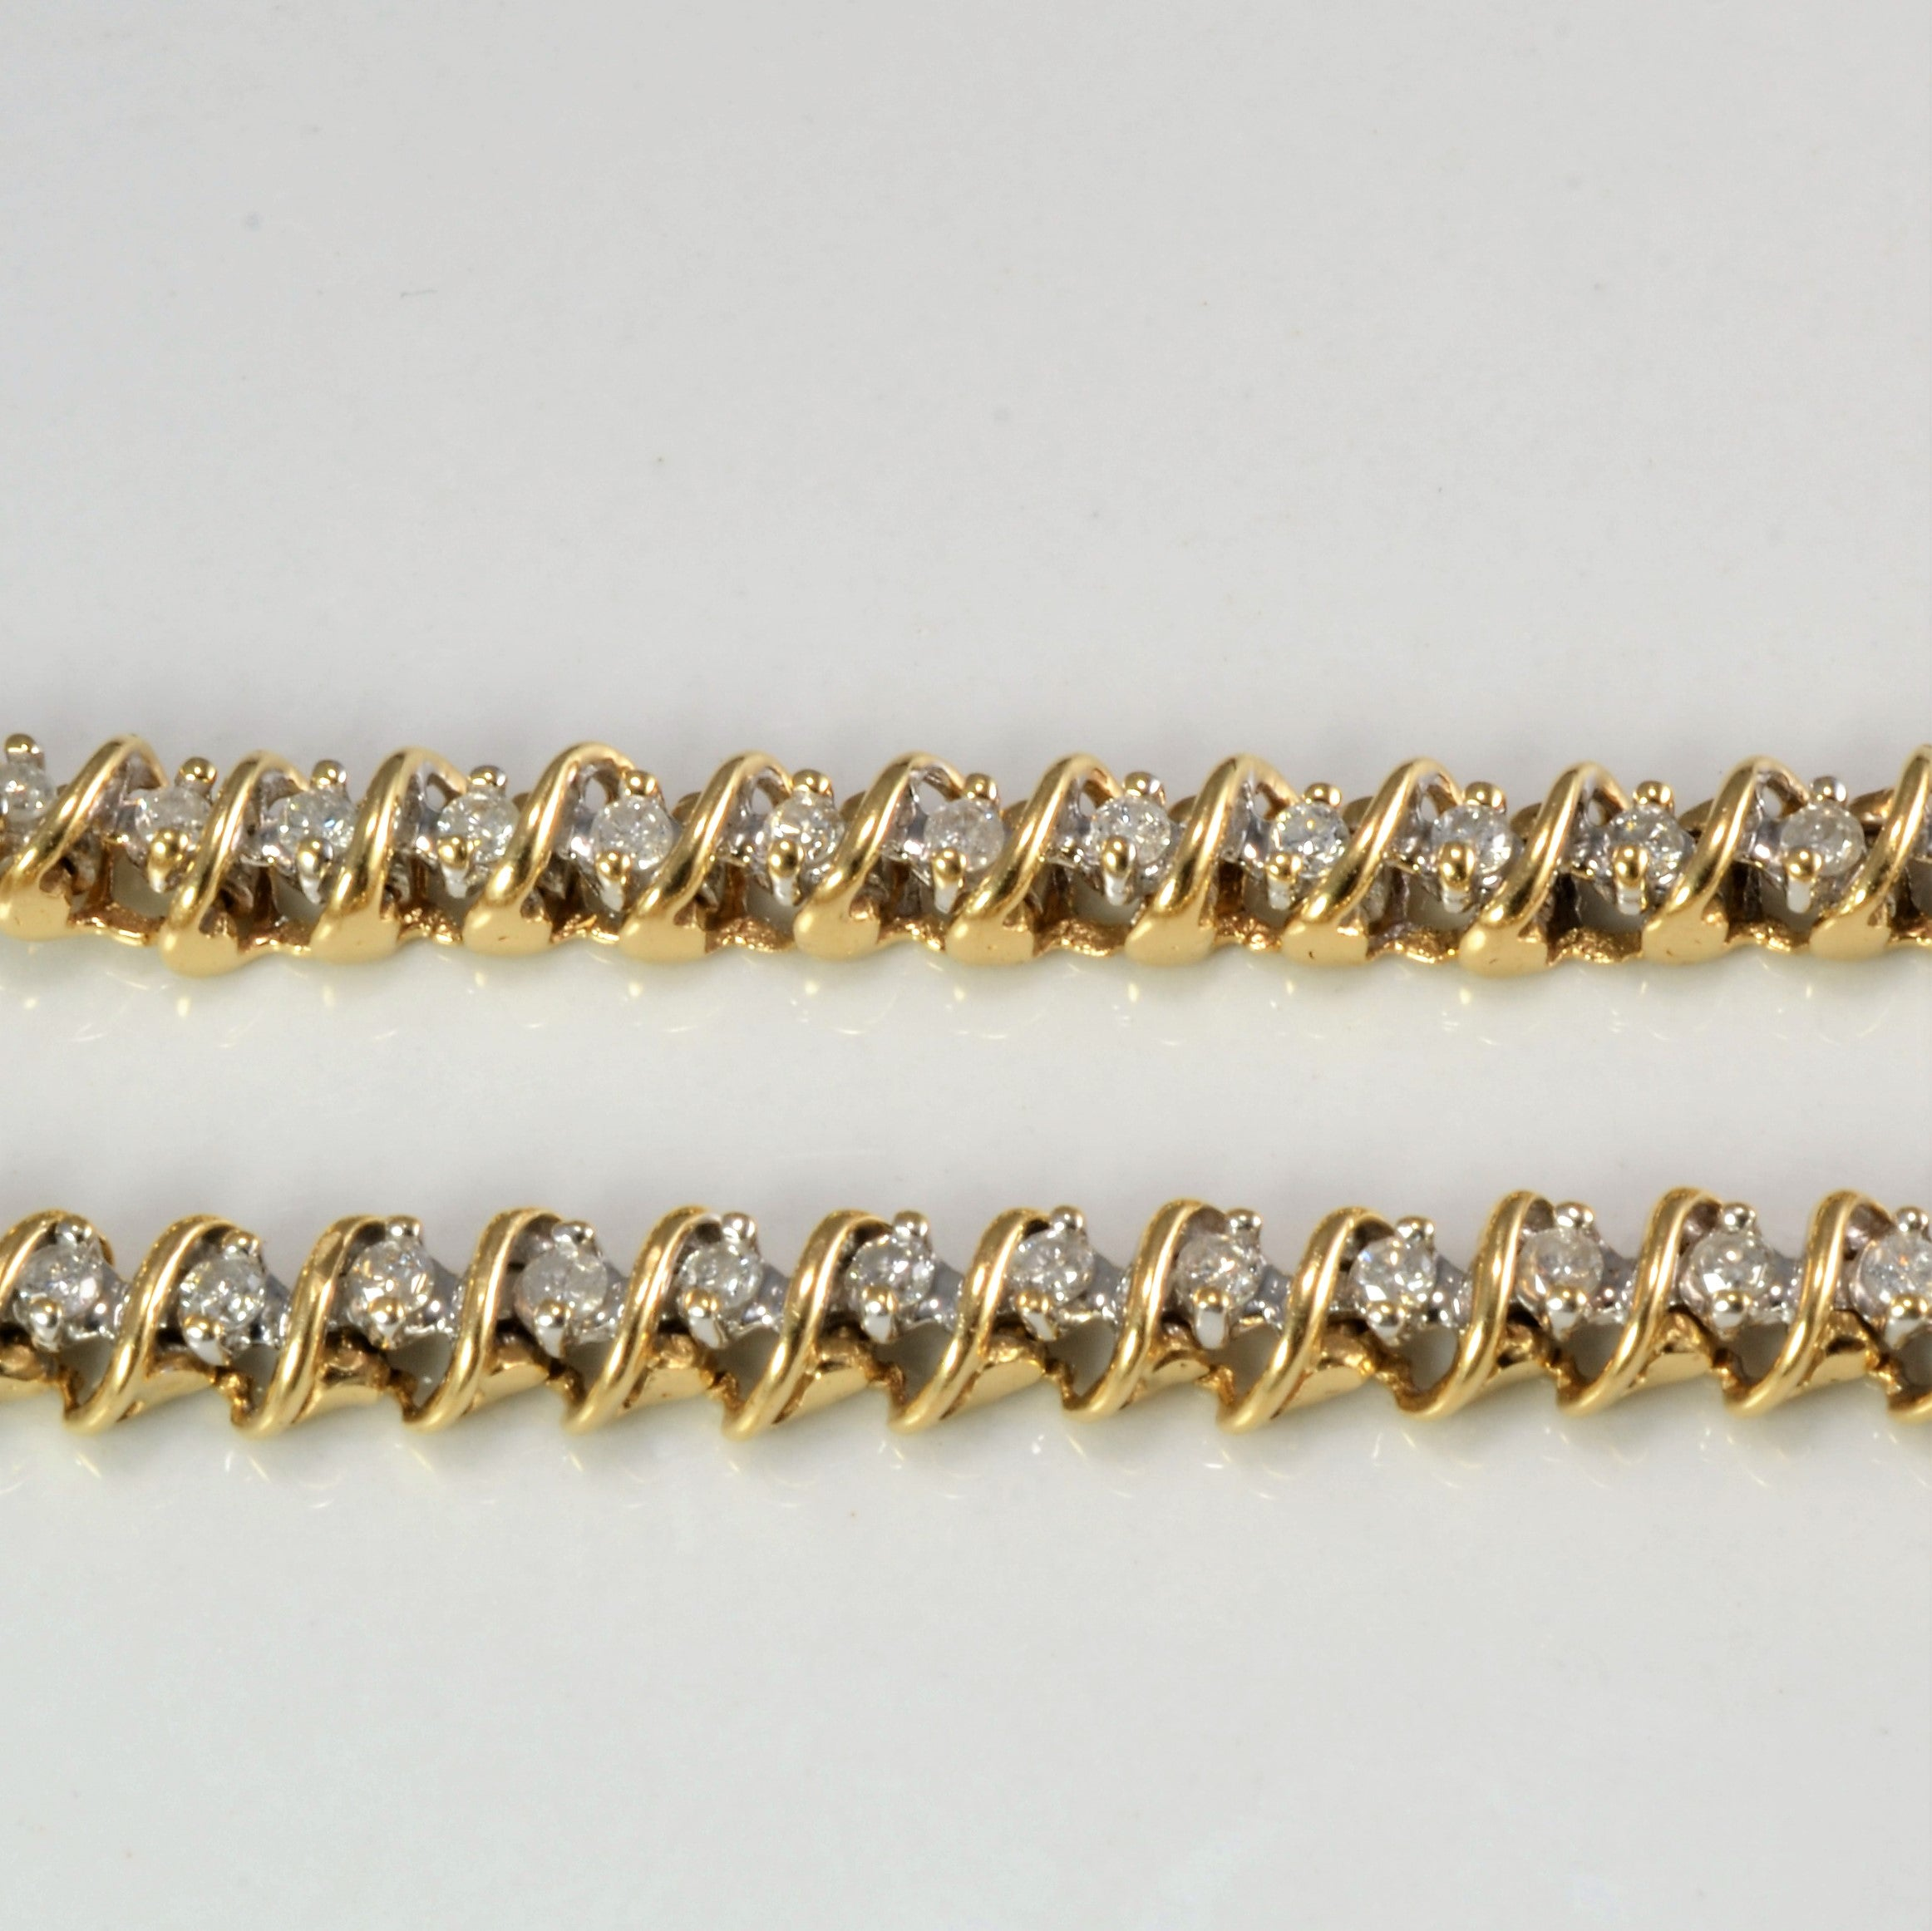 Diamond Tennis Bracelet | 1.10 ctw, 7.5''|